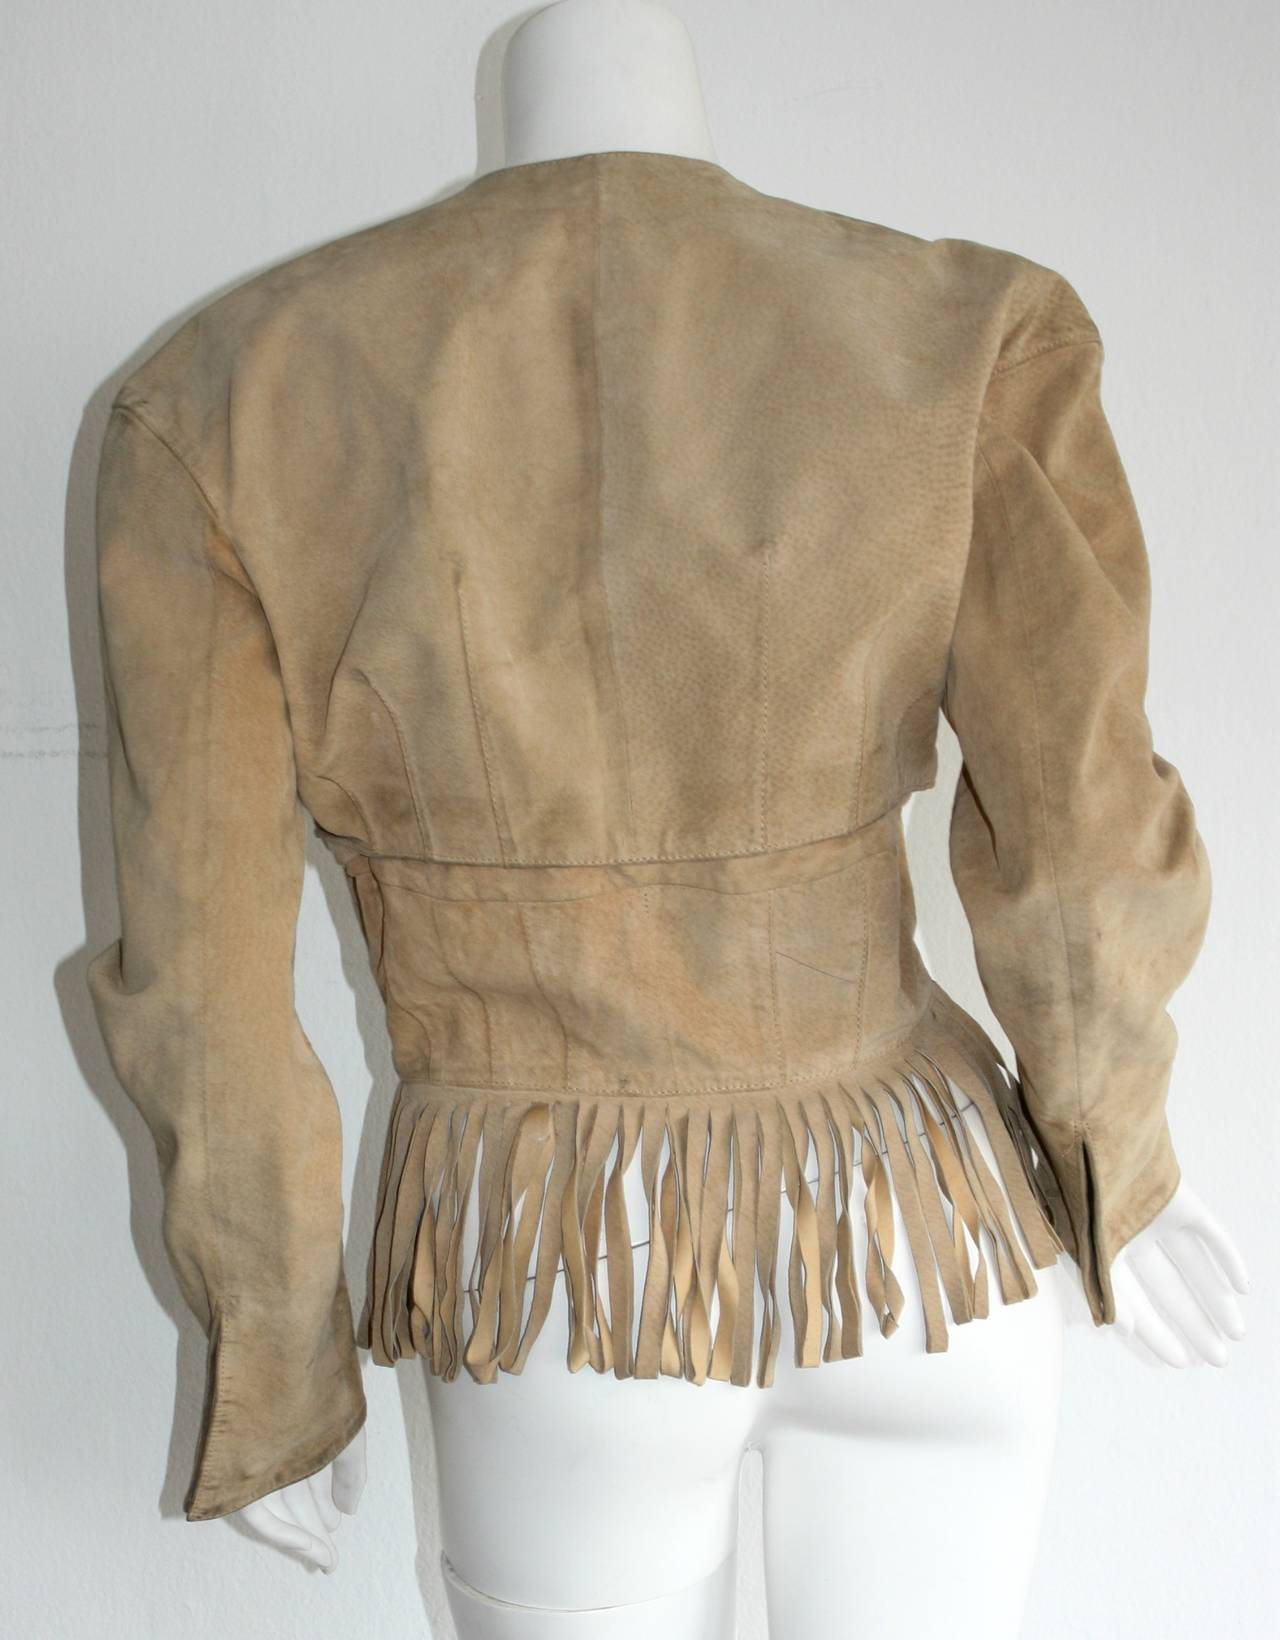 Vintage Jean Claude Jitrois Haute Couture Numbered Suede Tan Fringe Jacket 4